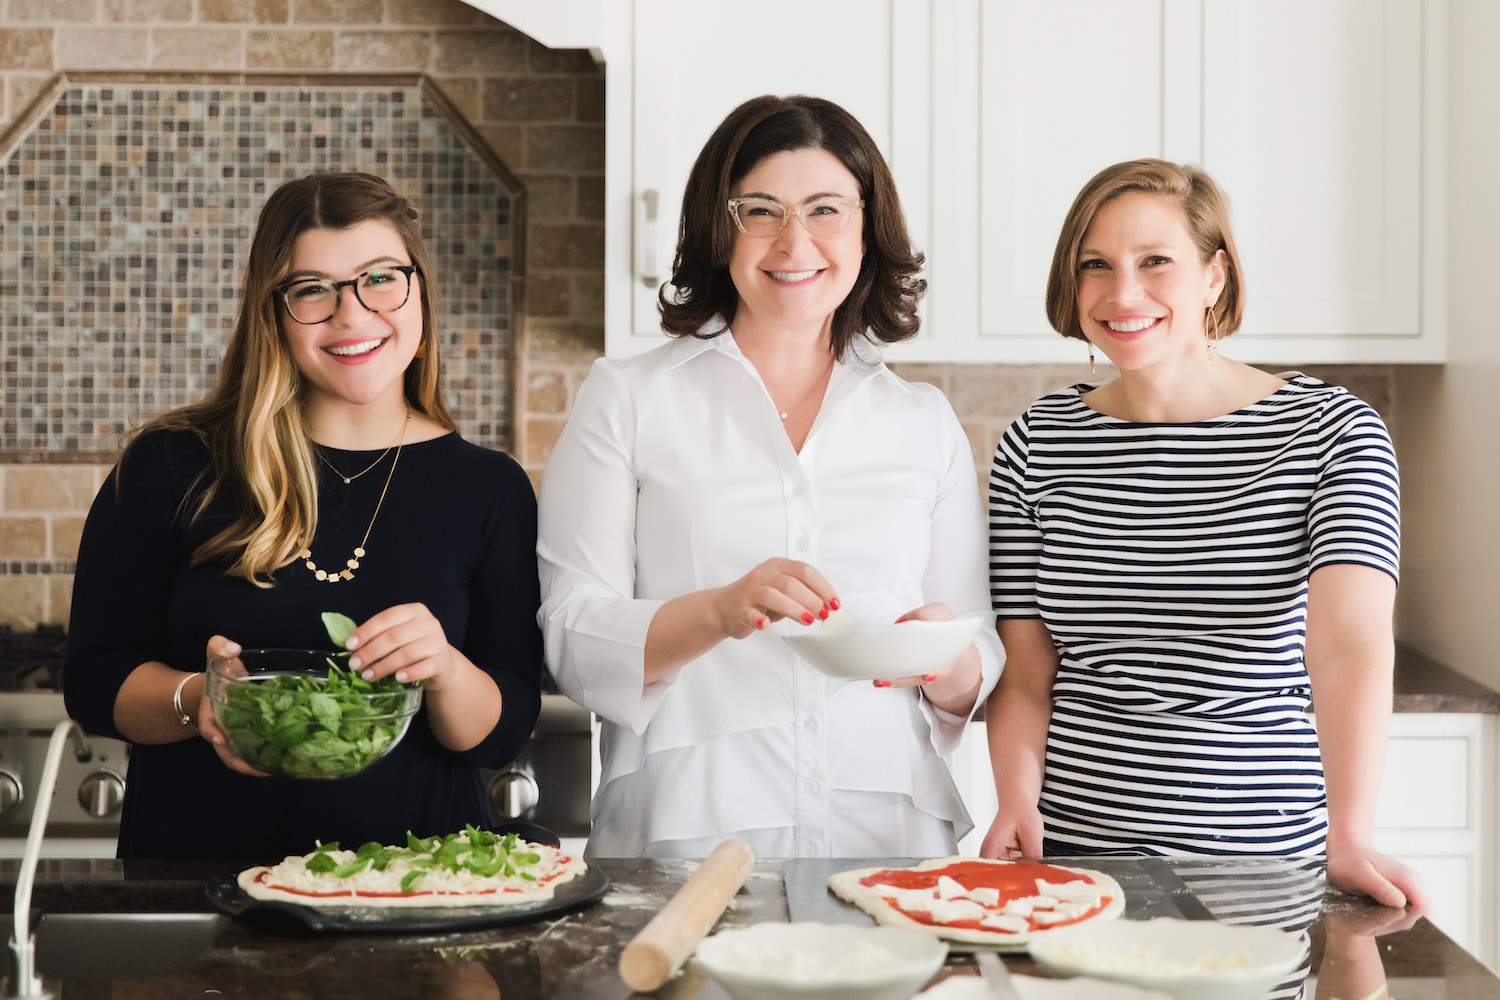 peacelovefood-Team-Nutrition-Counseling-Intuitive-Mindful-Eating-HAES-Health-at-Every-Size-Dietitian-EatingDisorder-Boston-Newton-MA.jpg